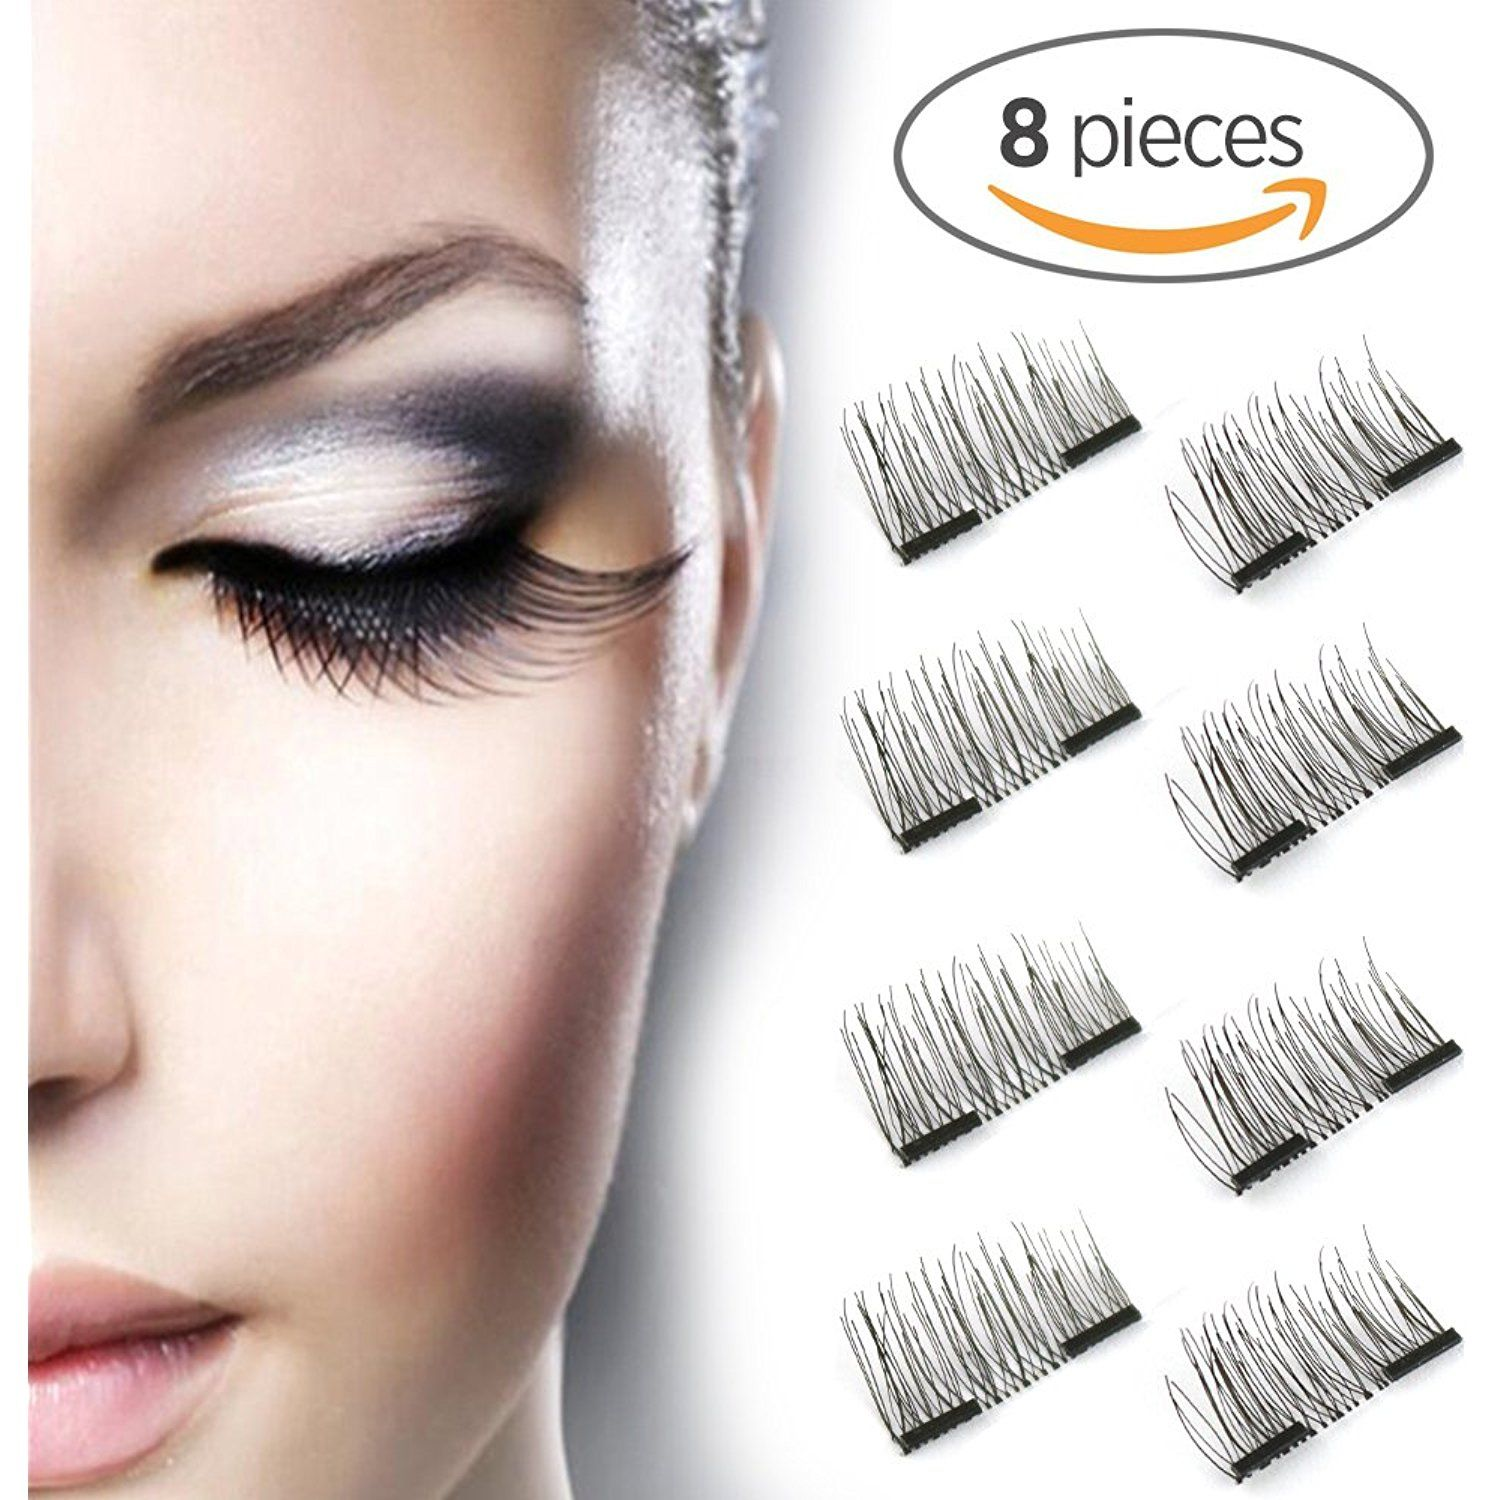 0f078b51130 New Dual Magnetic False Eyelashes - 2 Pairs (8 Pieces) Ultra Thin 3D Fiber  Reusable Best Fake Lashes Extension for Natural, Perfect for Deep Set Eyes  # ...